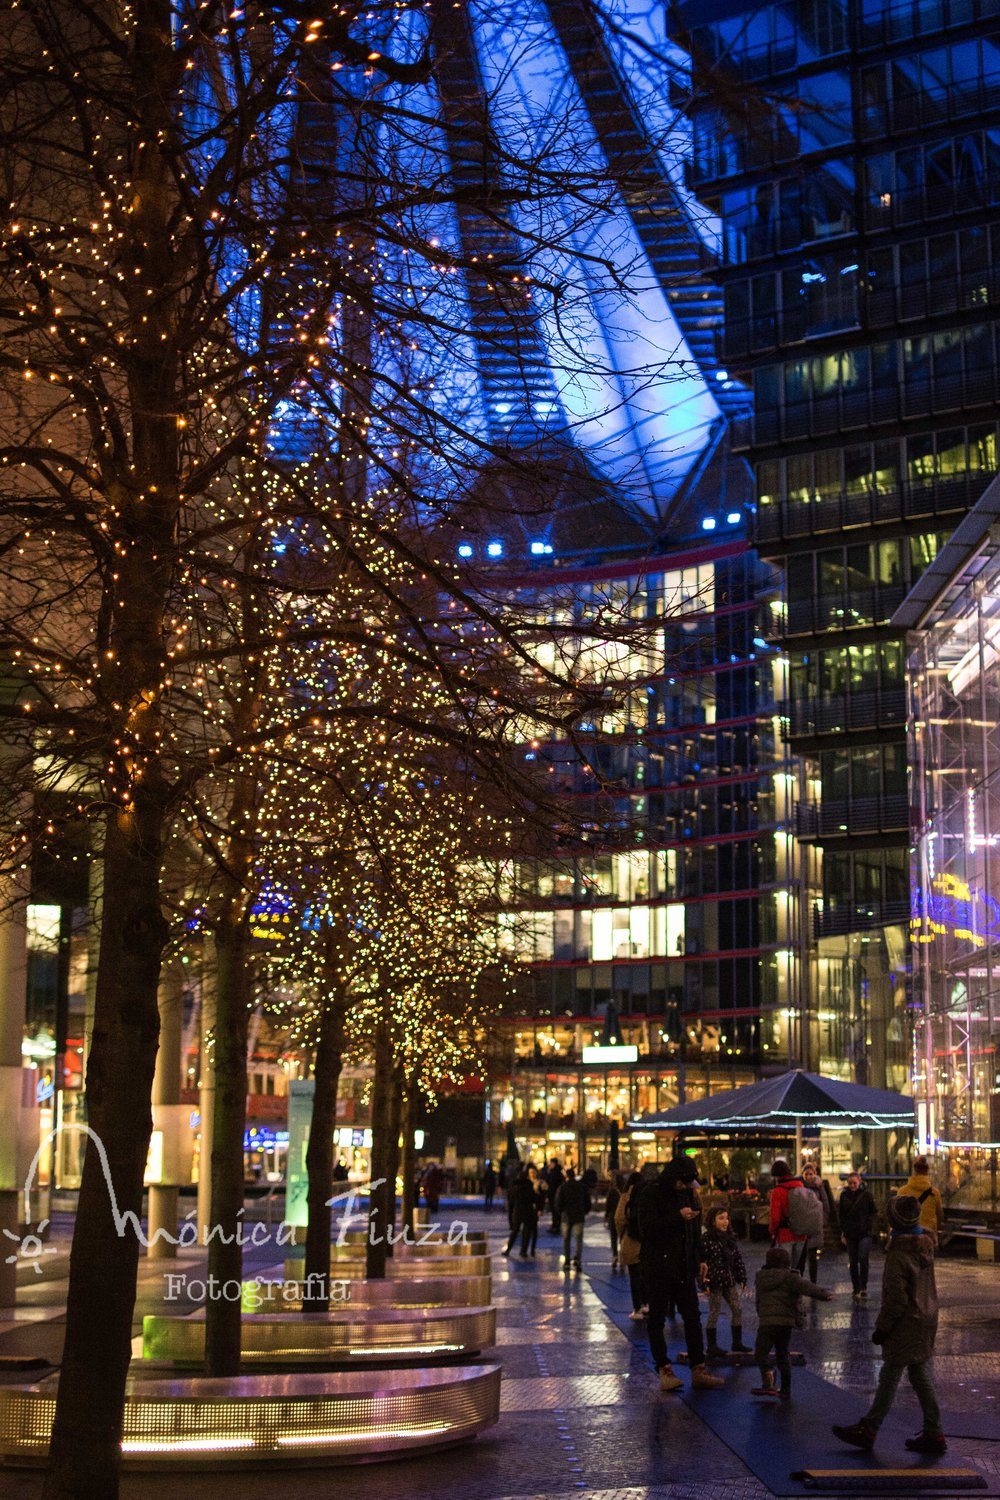 Sony Center Potsdamer Platz Berlin